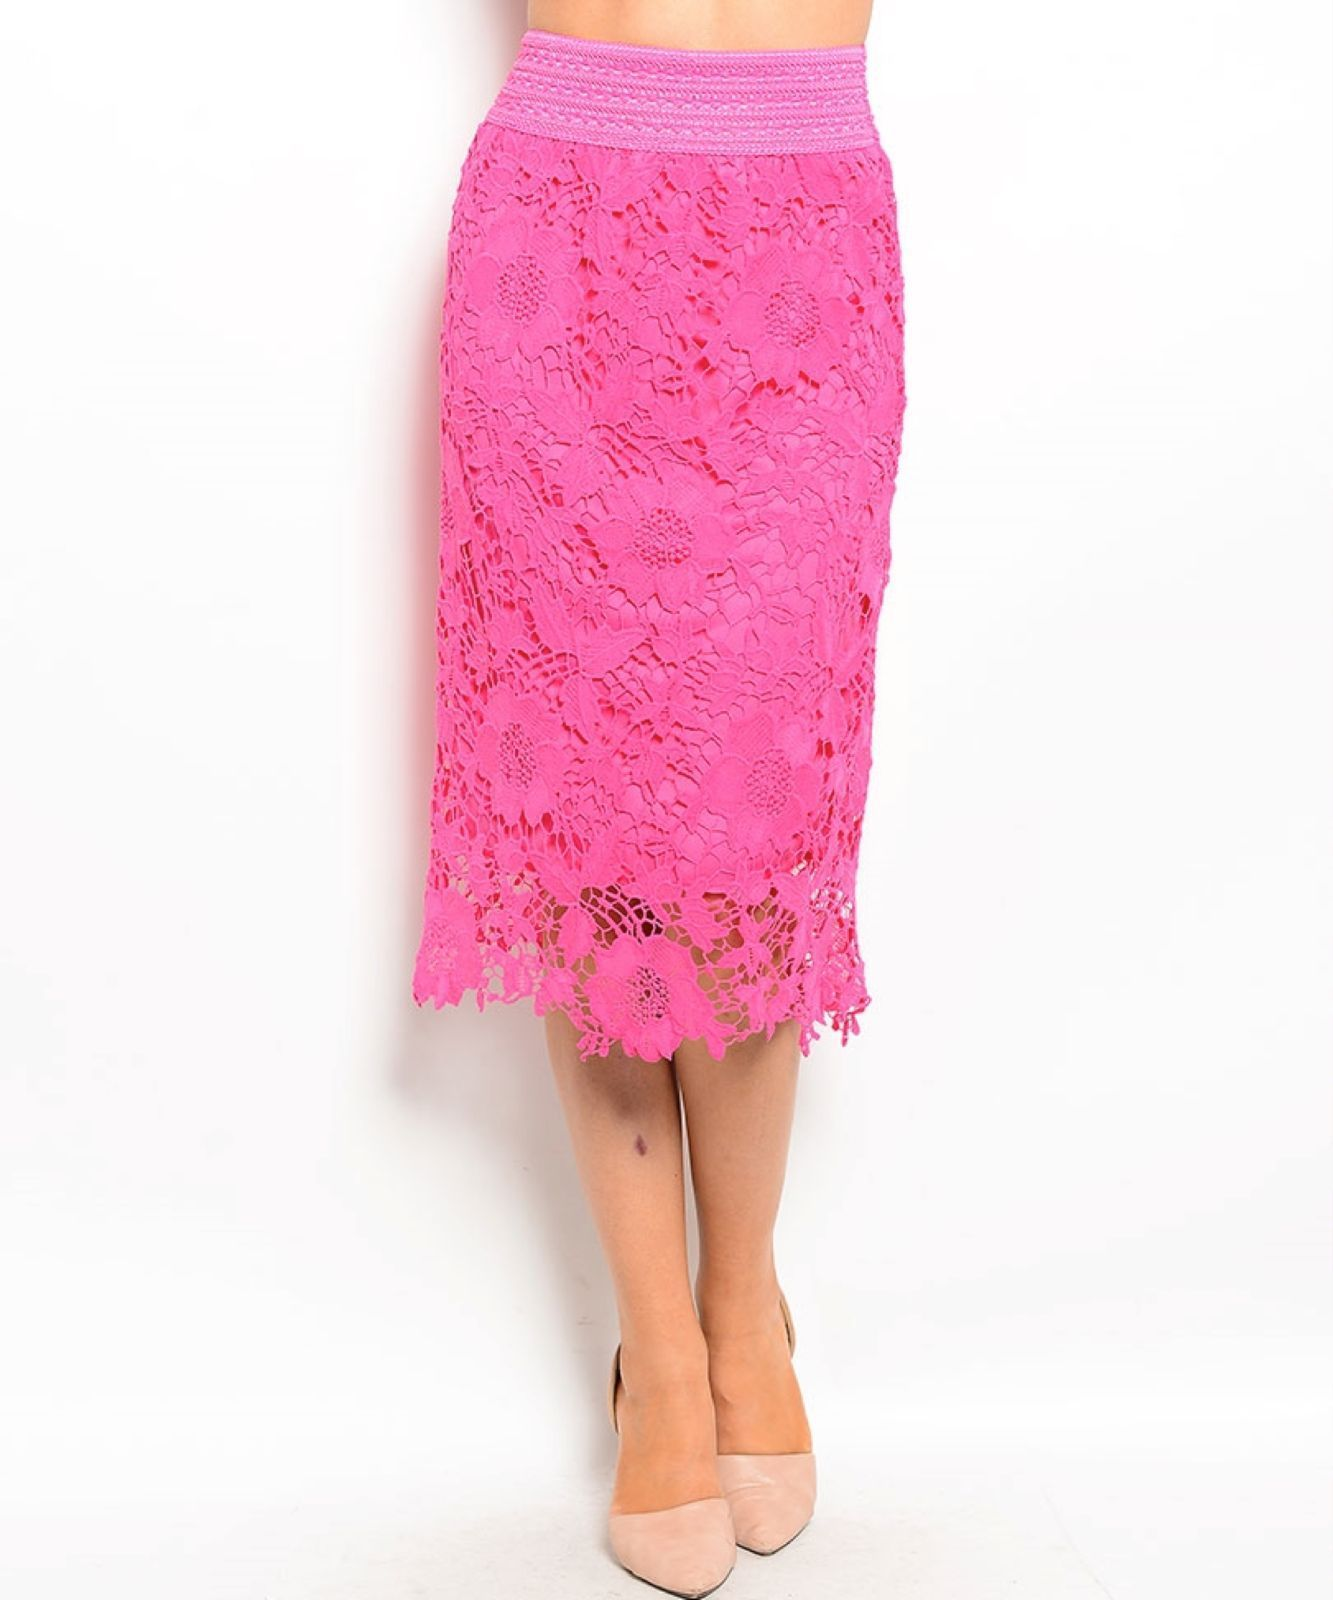 Image 5 of Chic Crochet Lace Lined Jr Skirt, Cocktail Club Wedding Party, Fuchsia or Aqua -